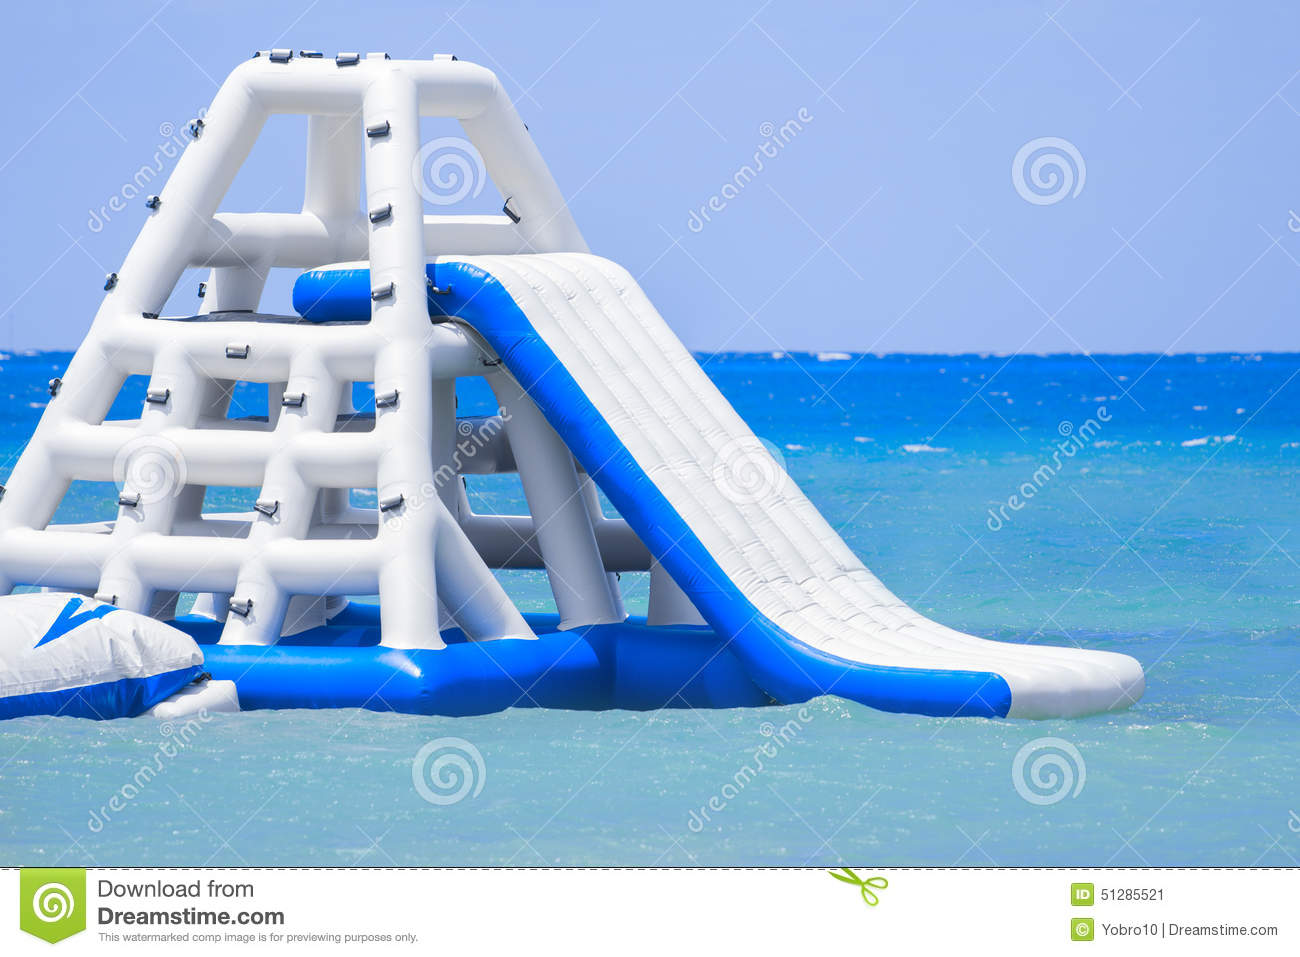 http://thumbs.dreamstime.com/z/inflatable-slide-caribbean-island-resort-large-ocean-beautiful-blue-water-background-51285521.jpg